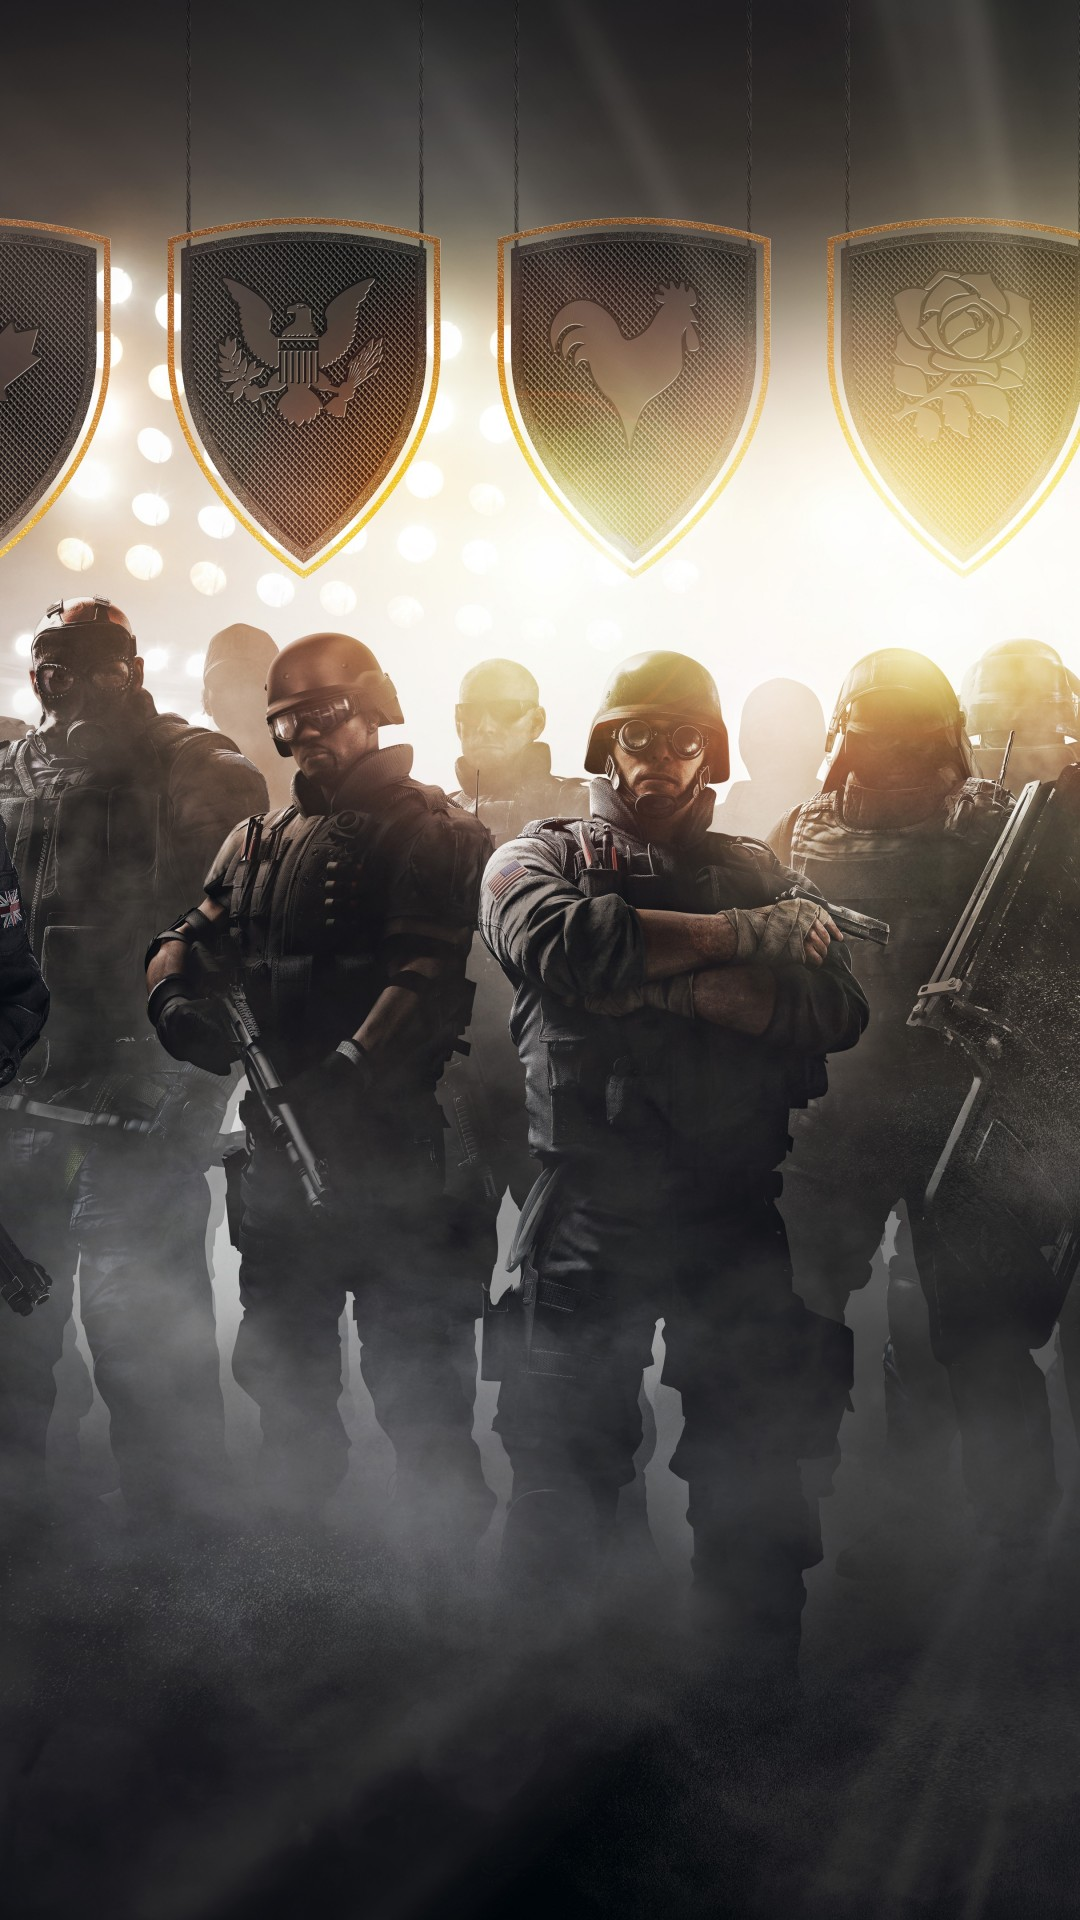 Wallpaper Tom Clancy S Rainbow Six Siege Pro League Game